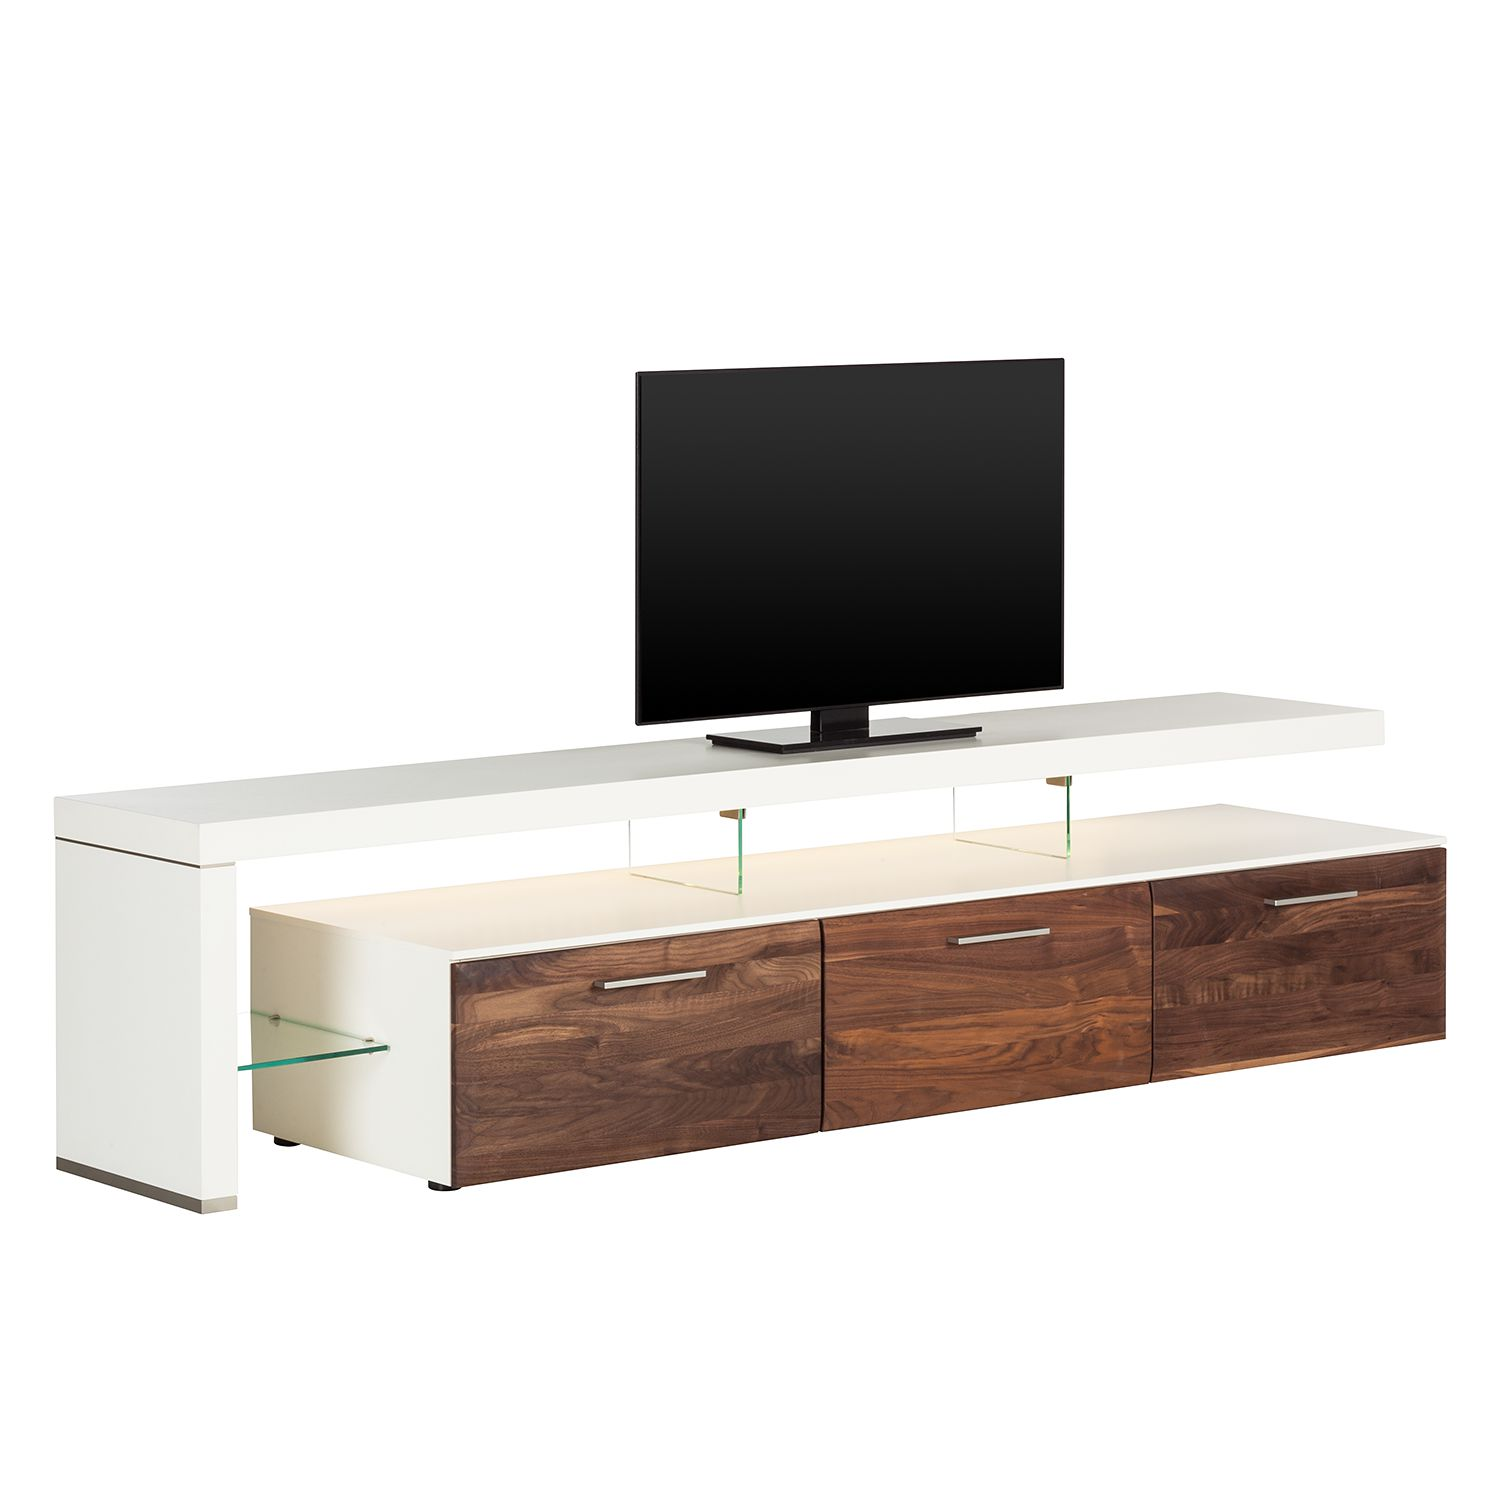 tv lowboard wei nussbaum preis vergleich 2016. Black Bedroom Furniture Sets. Home Design Ideas